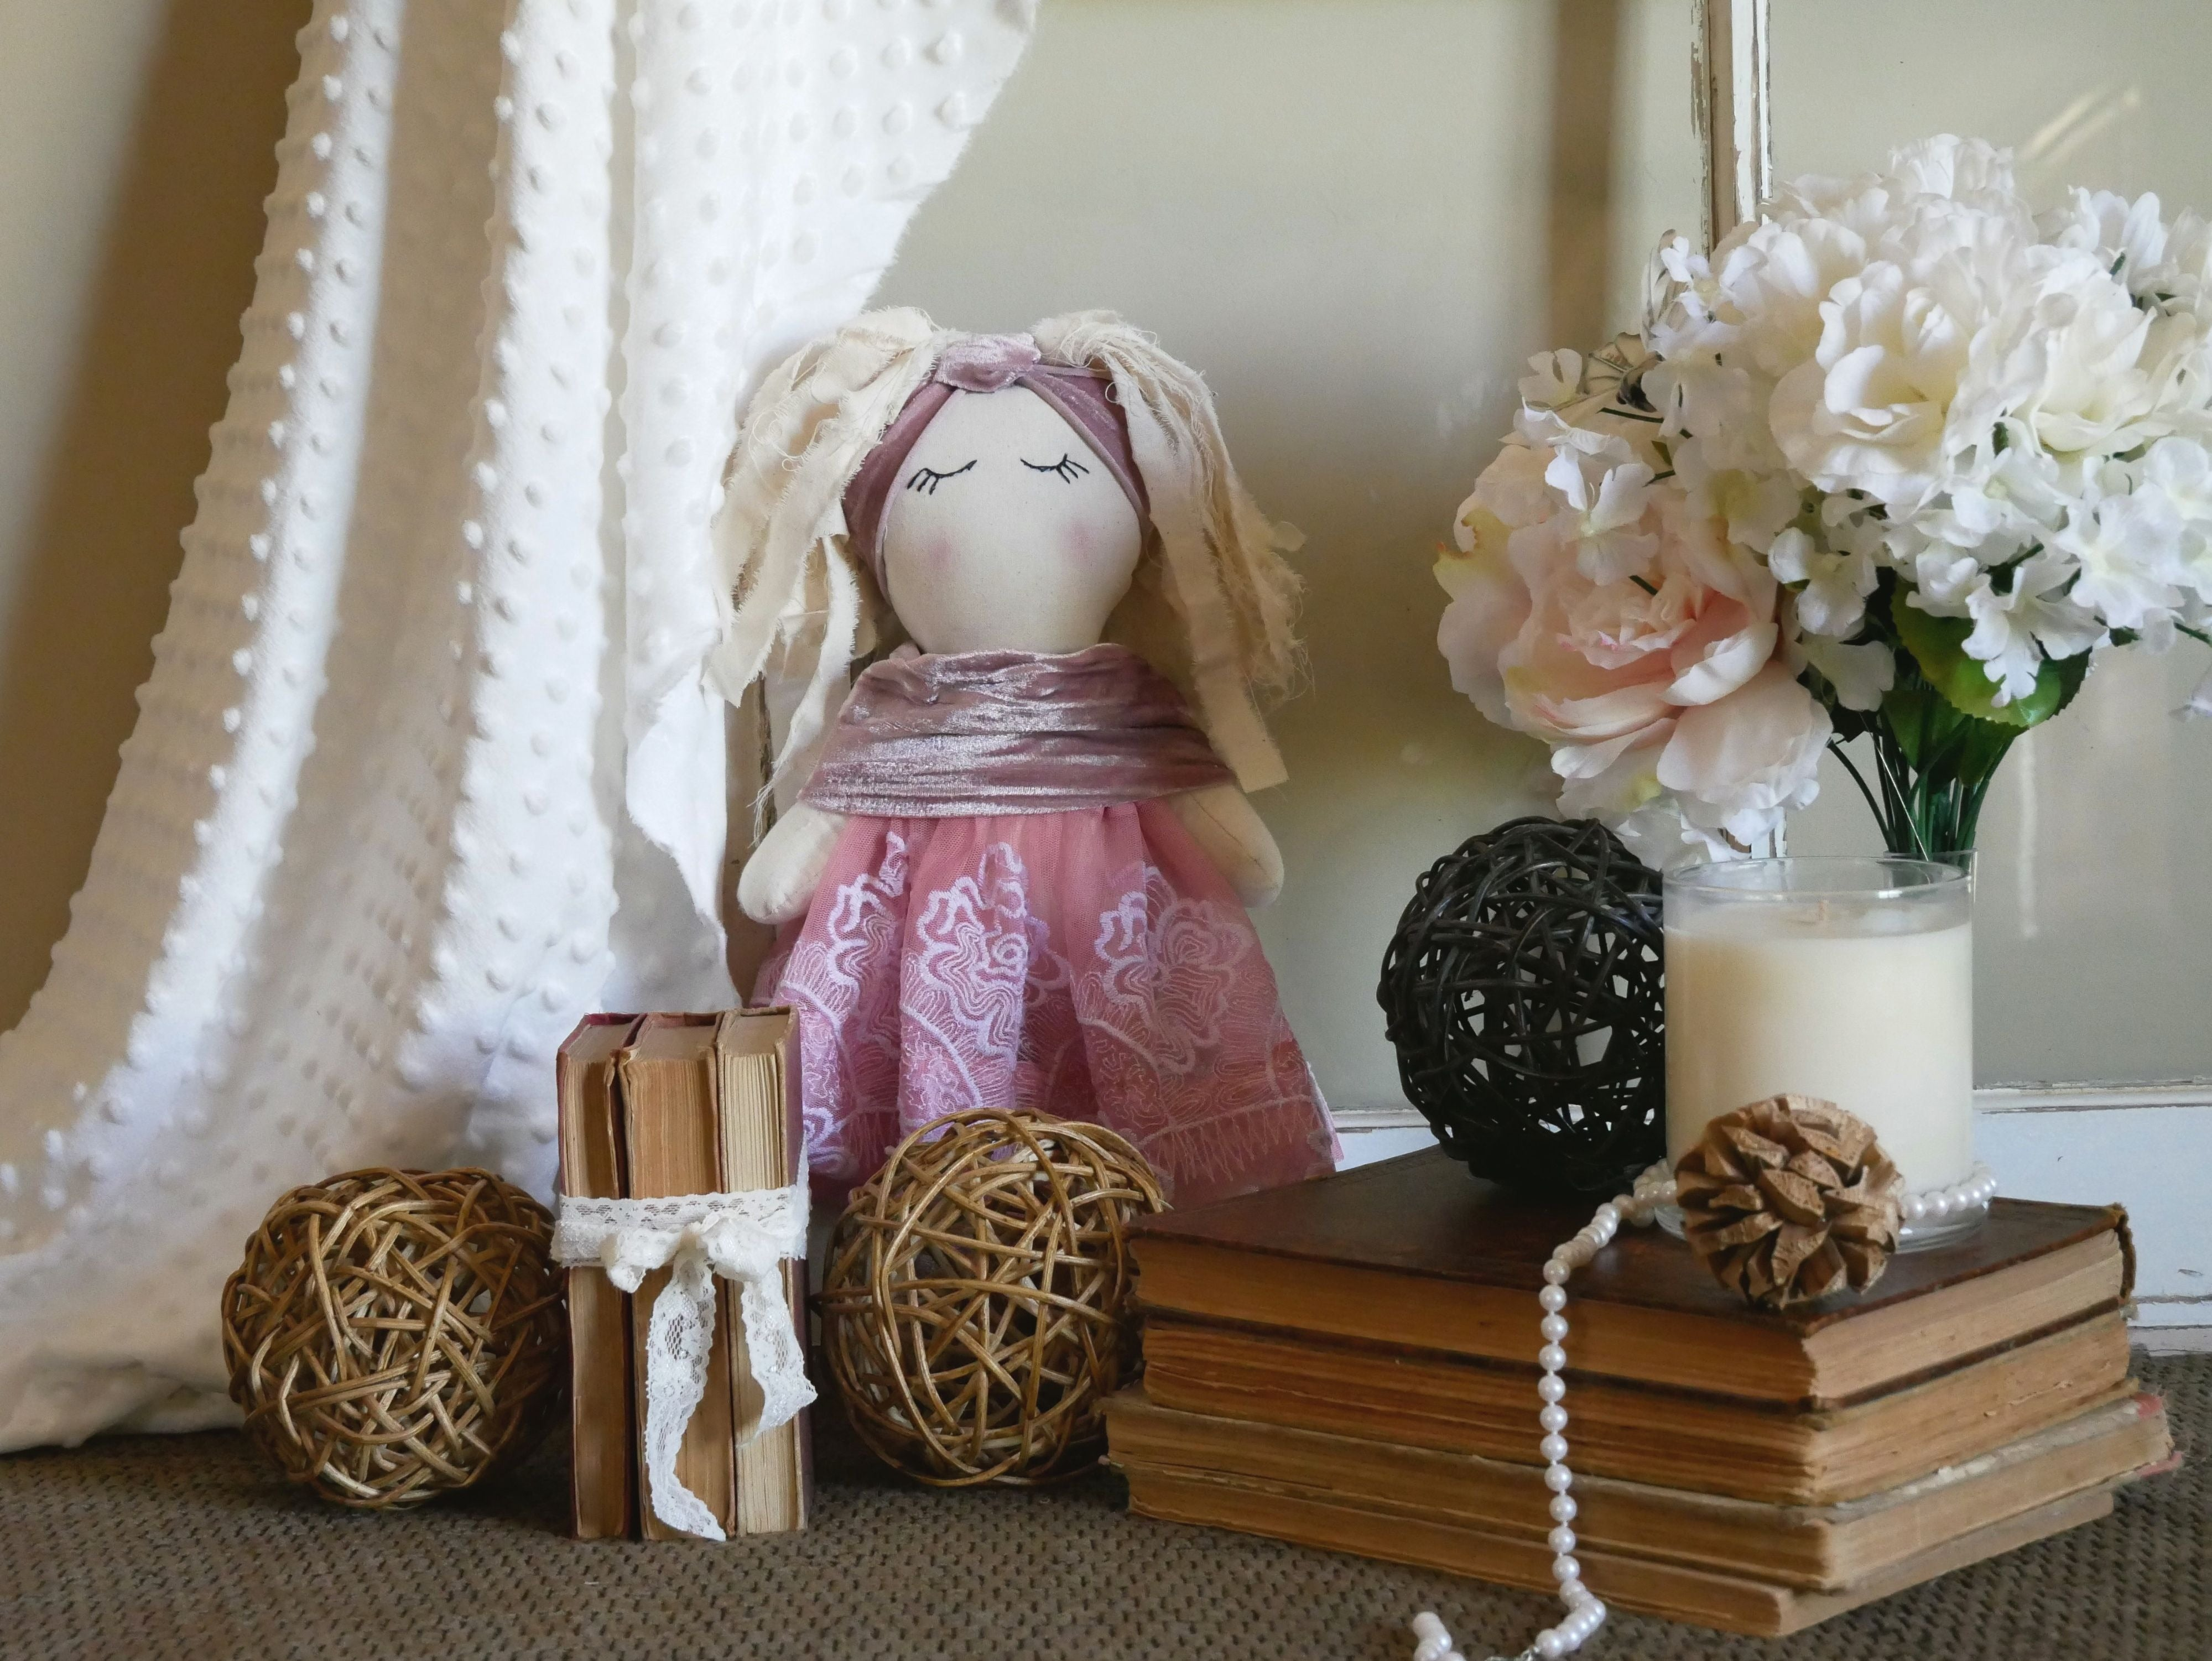 Handmade-Fabric-Rag-Doll-Nchanted-Gifts